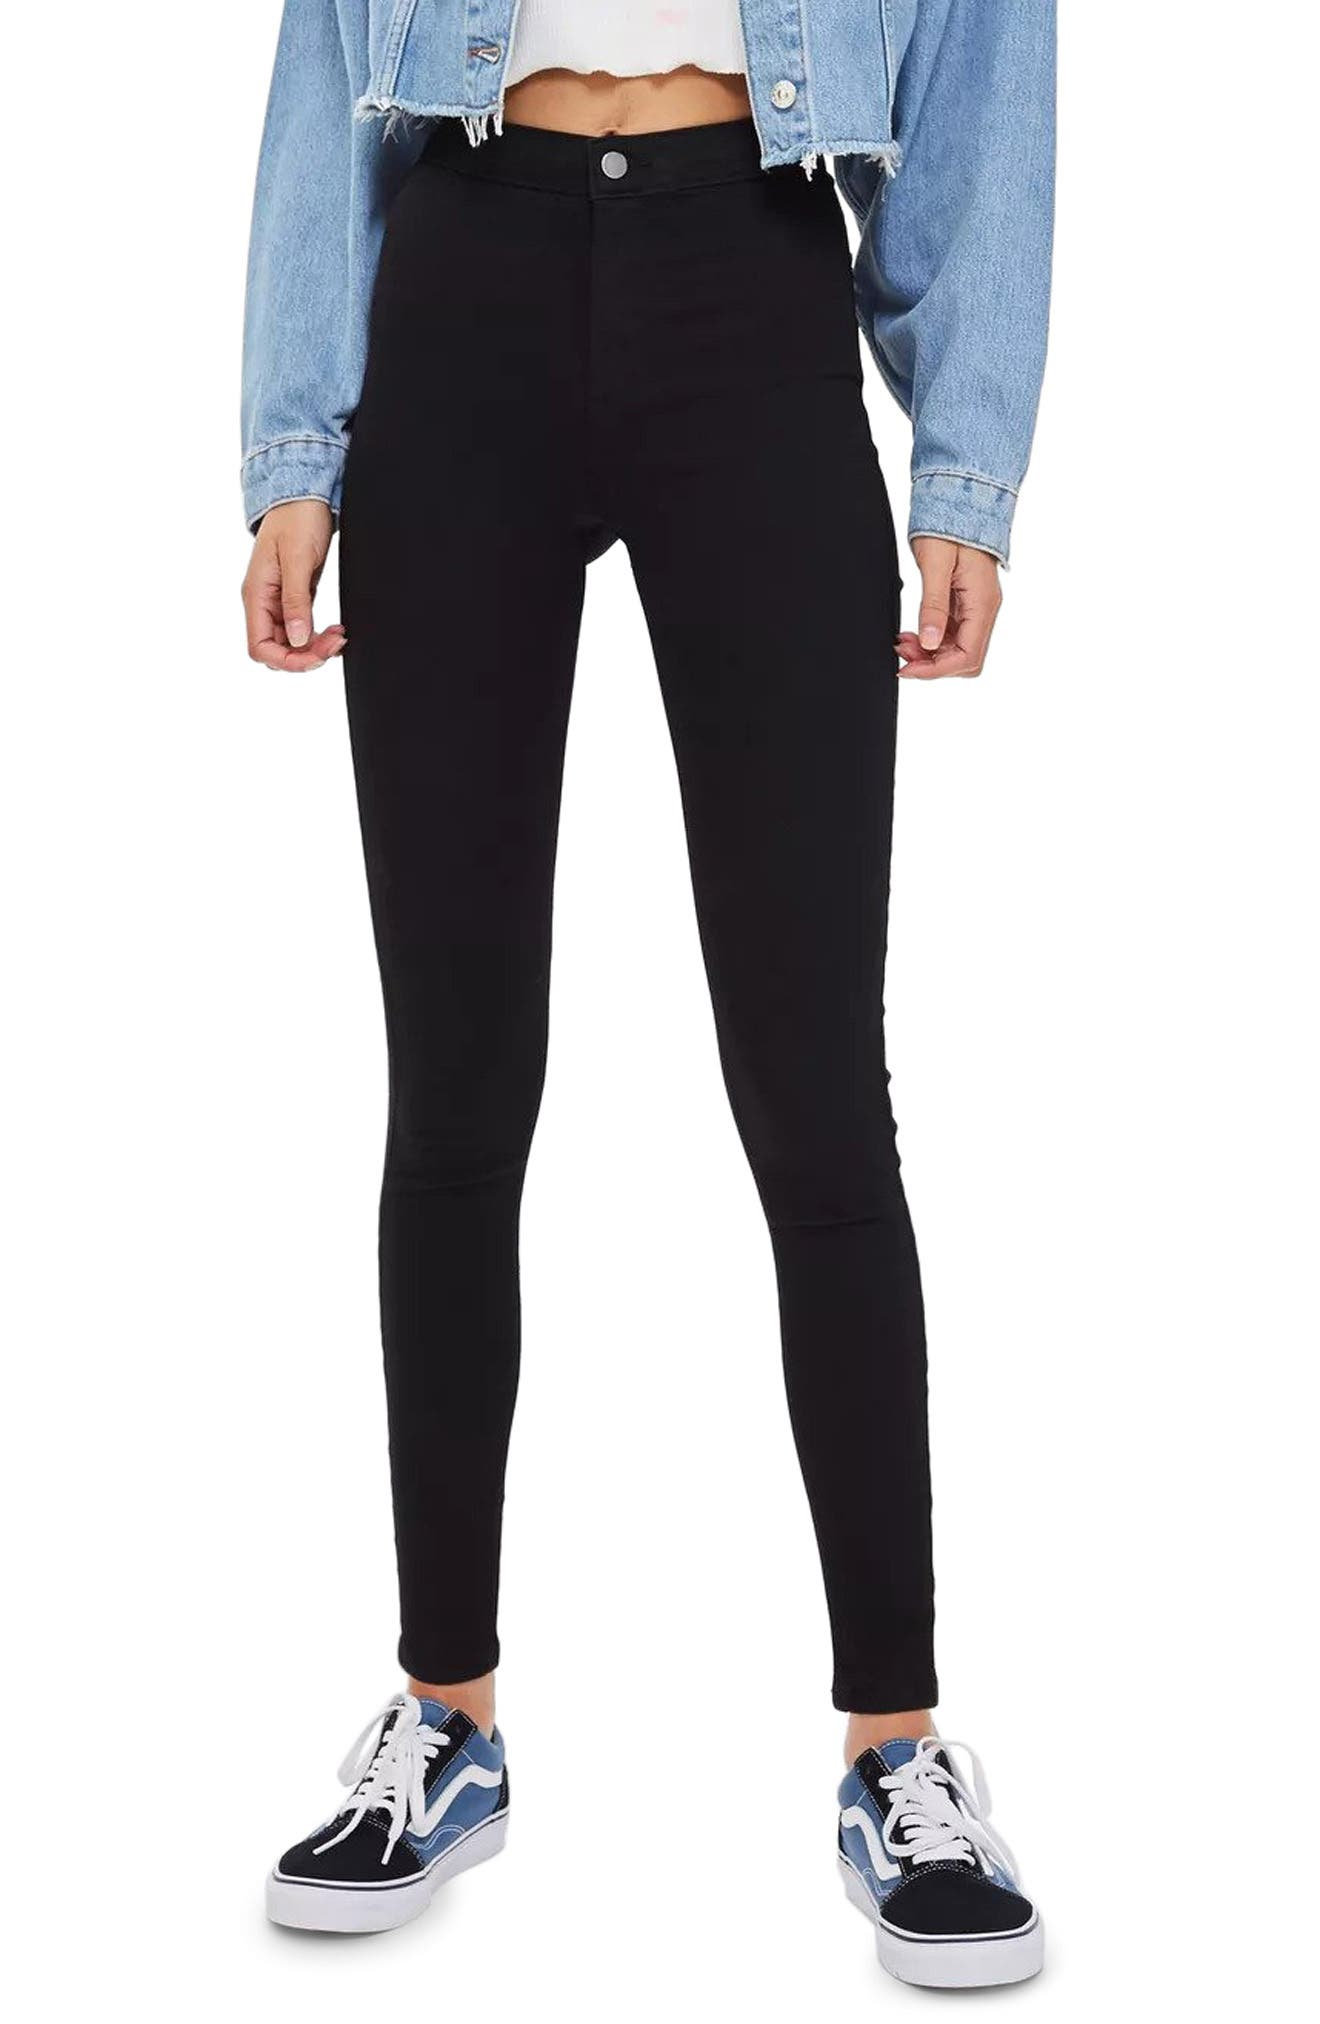 Topshop Joni High Waist Jeans (Regular & Petite)